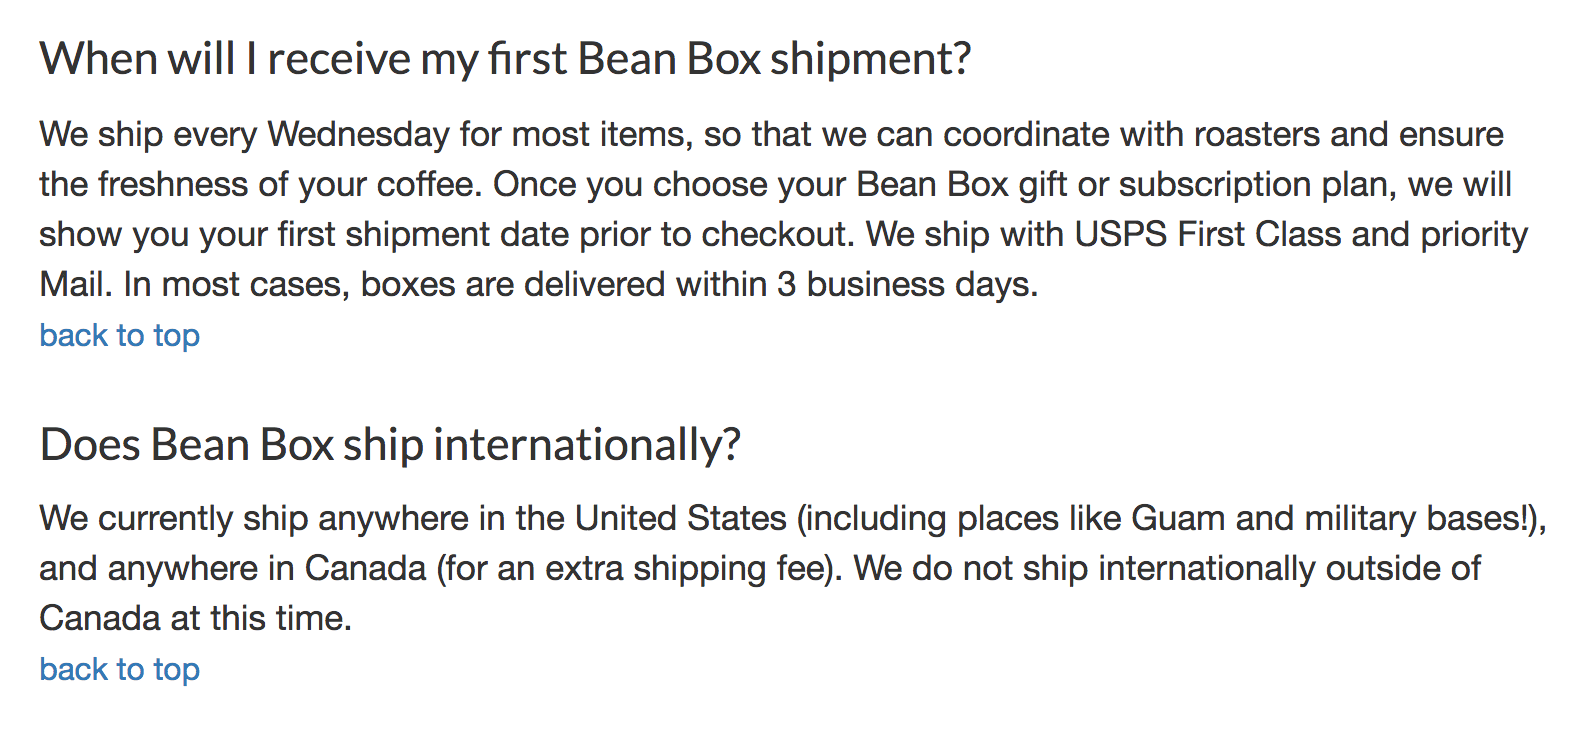 09/10/2020· use this return policy generator to create a return policy that protects your store and builds trust with shoppers. 3 Shipping Policy Examples For E Commerce Businesses Shippo